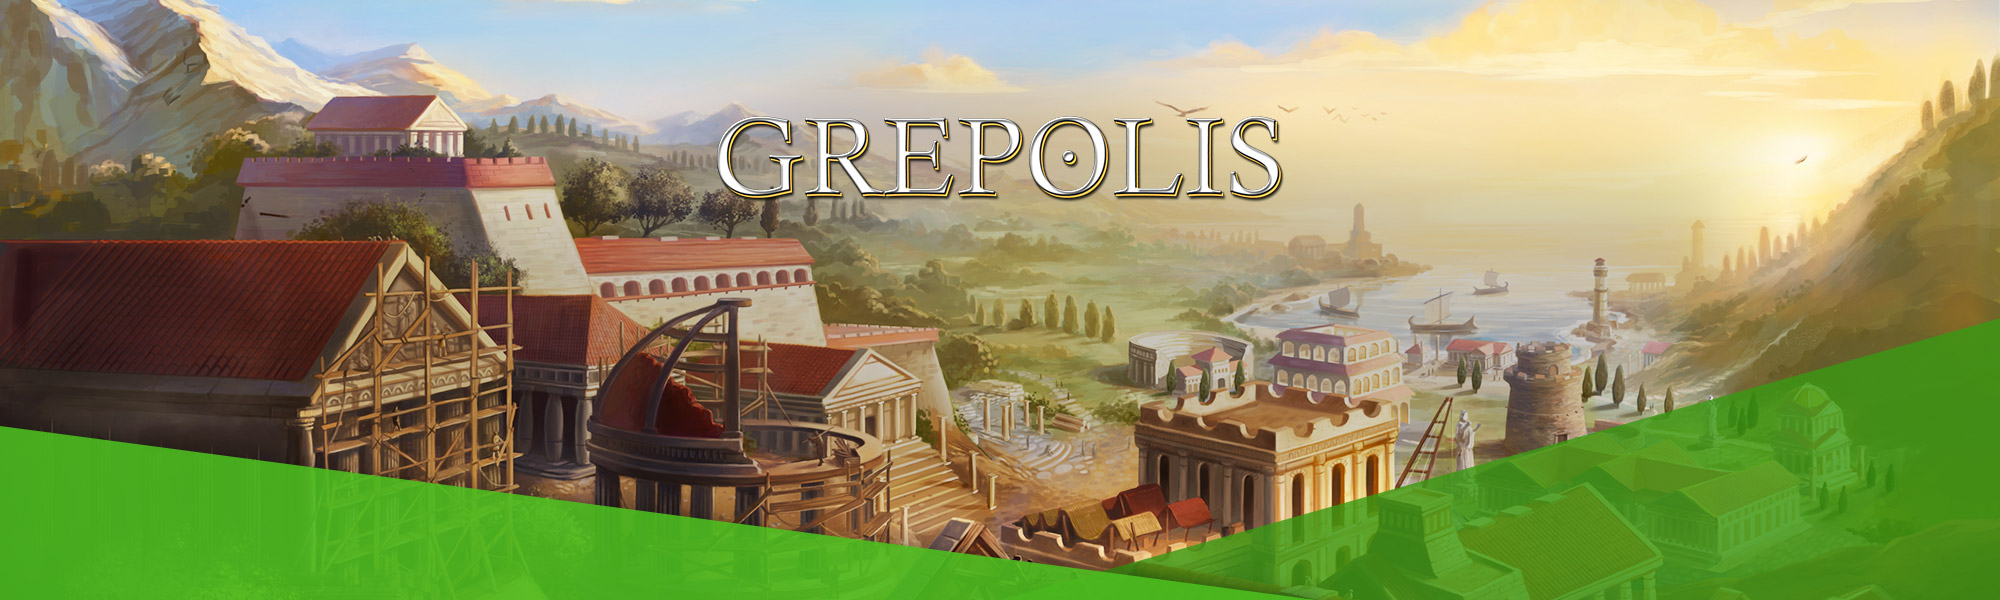 Grepolis - Strategie-MMO-Game